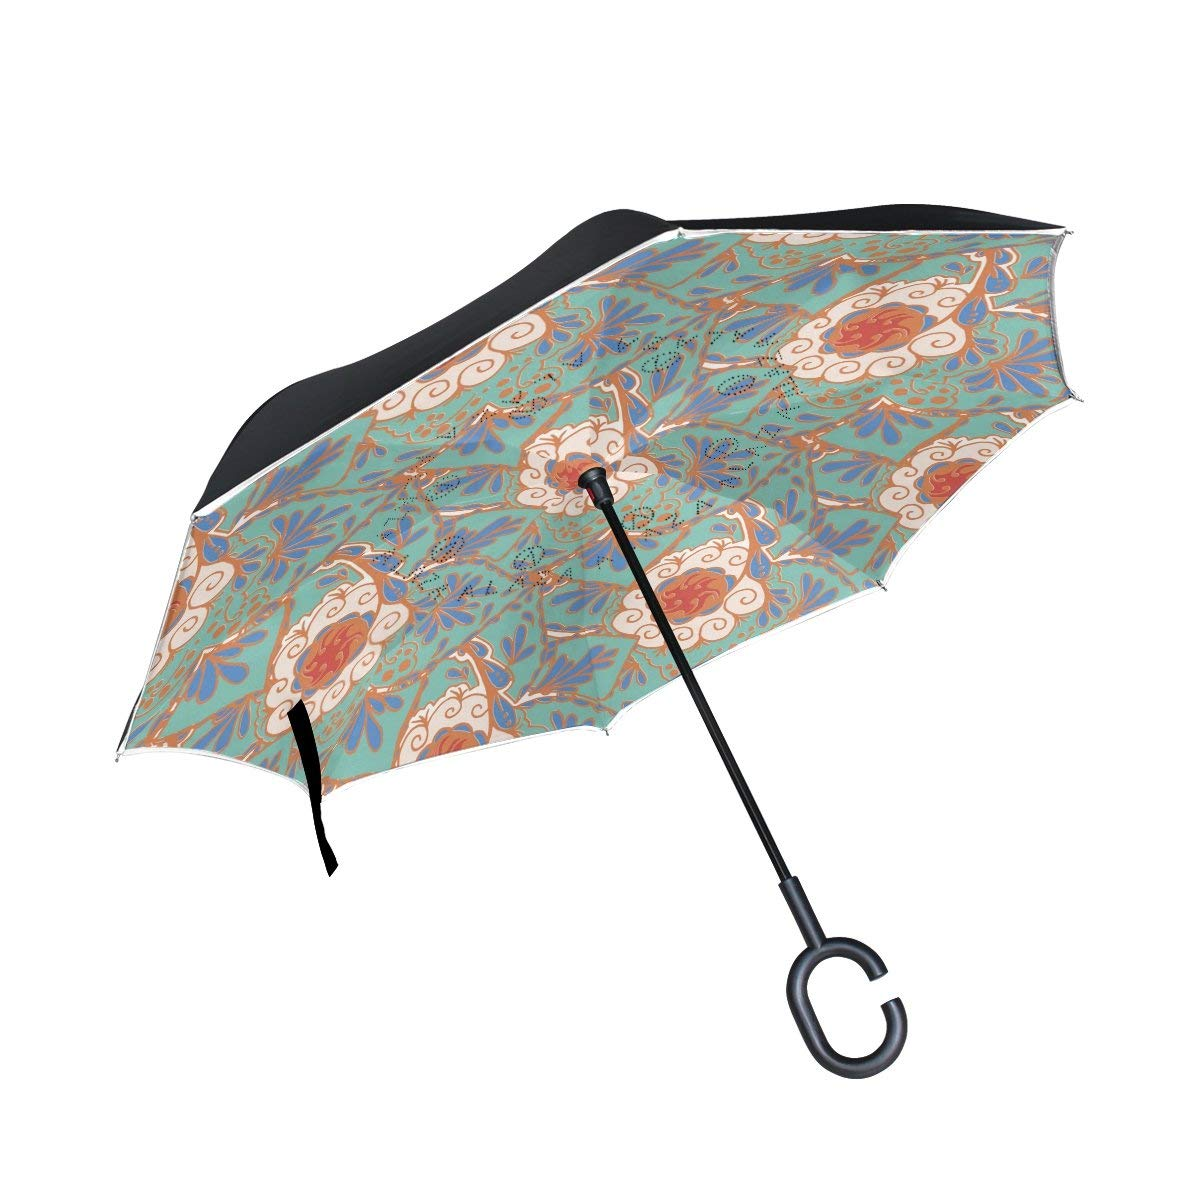 ALAZA Double Layer Inverted Reverse Umbrella Colorful Floral Windproof Car Rain C-shapped Handle Automatic